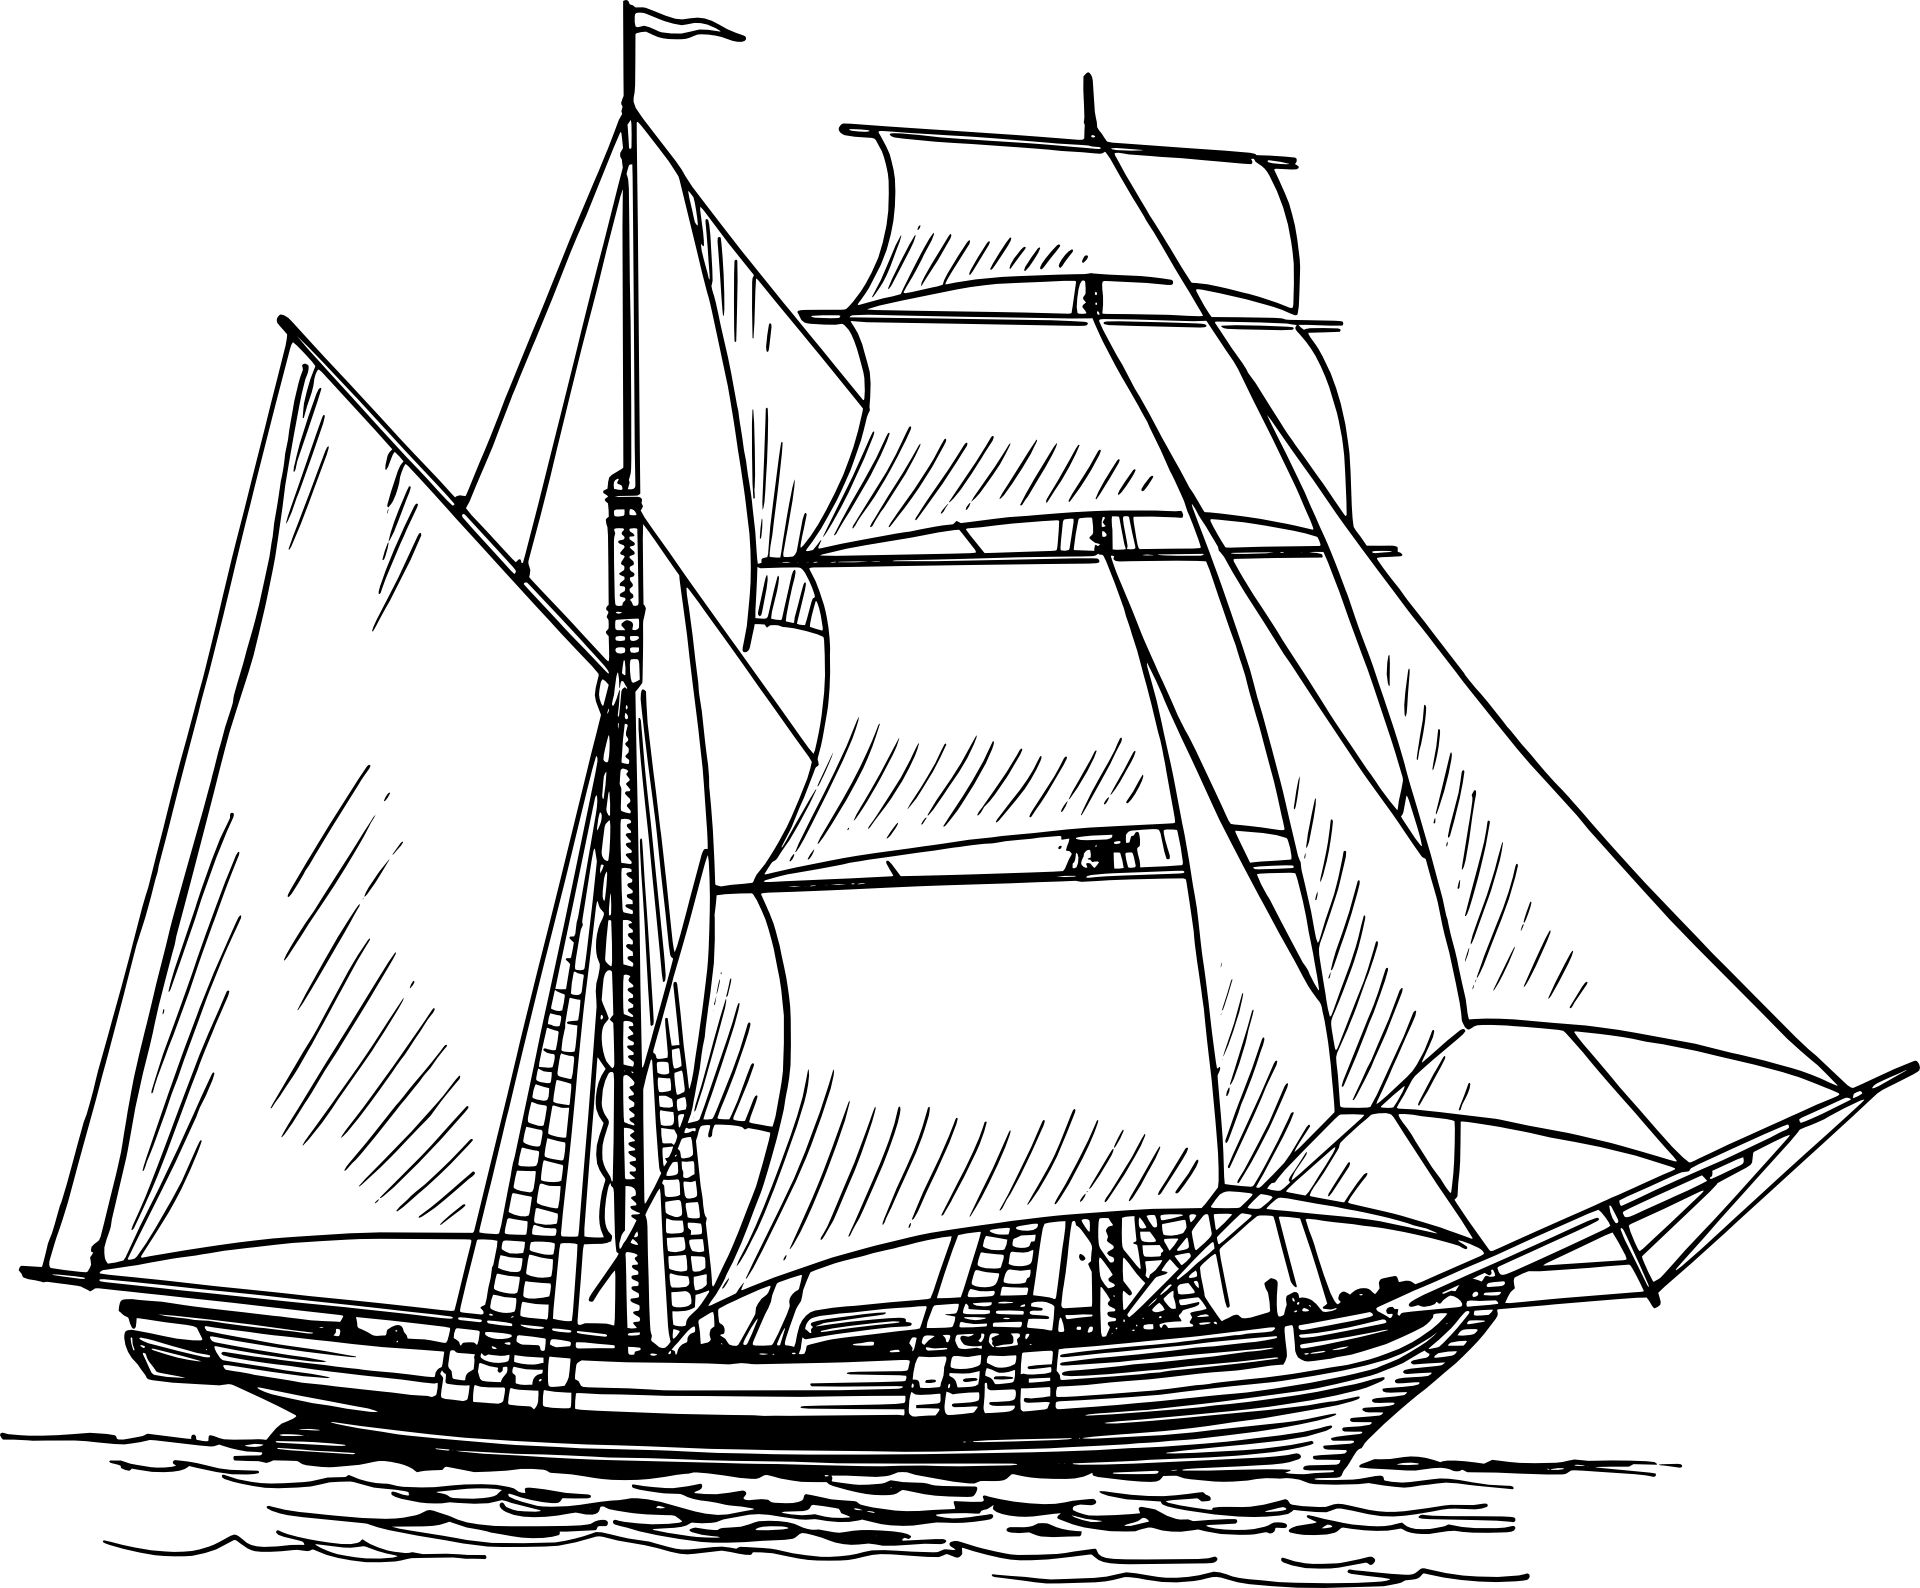 british sailing warship coloring pages - photo#6